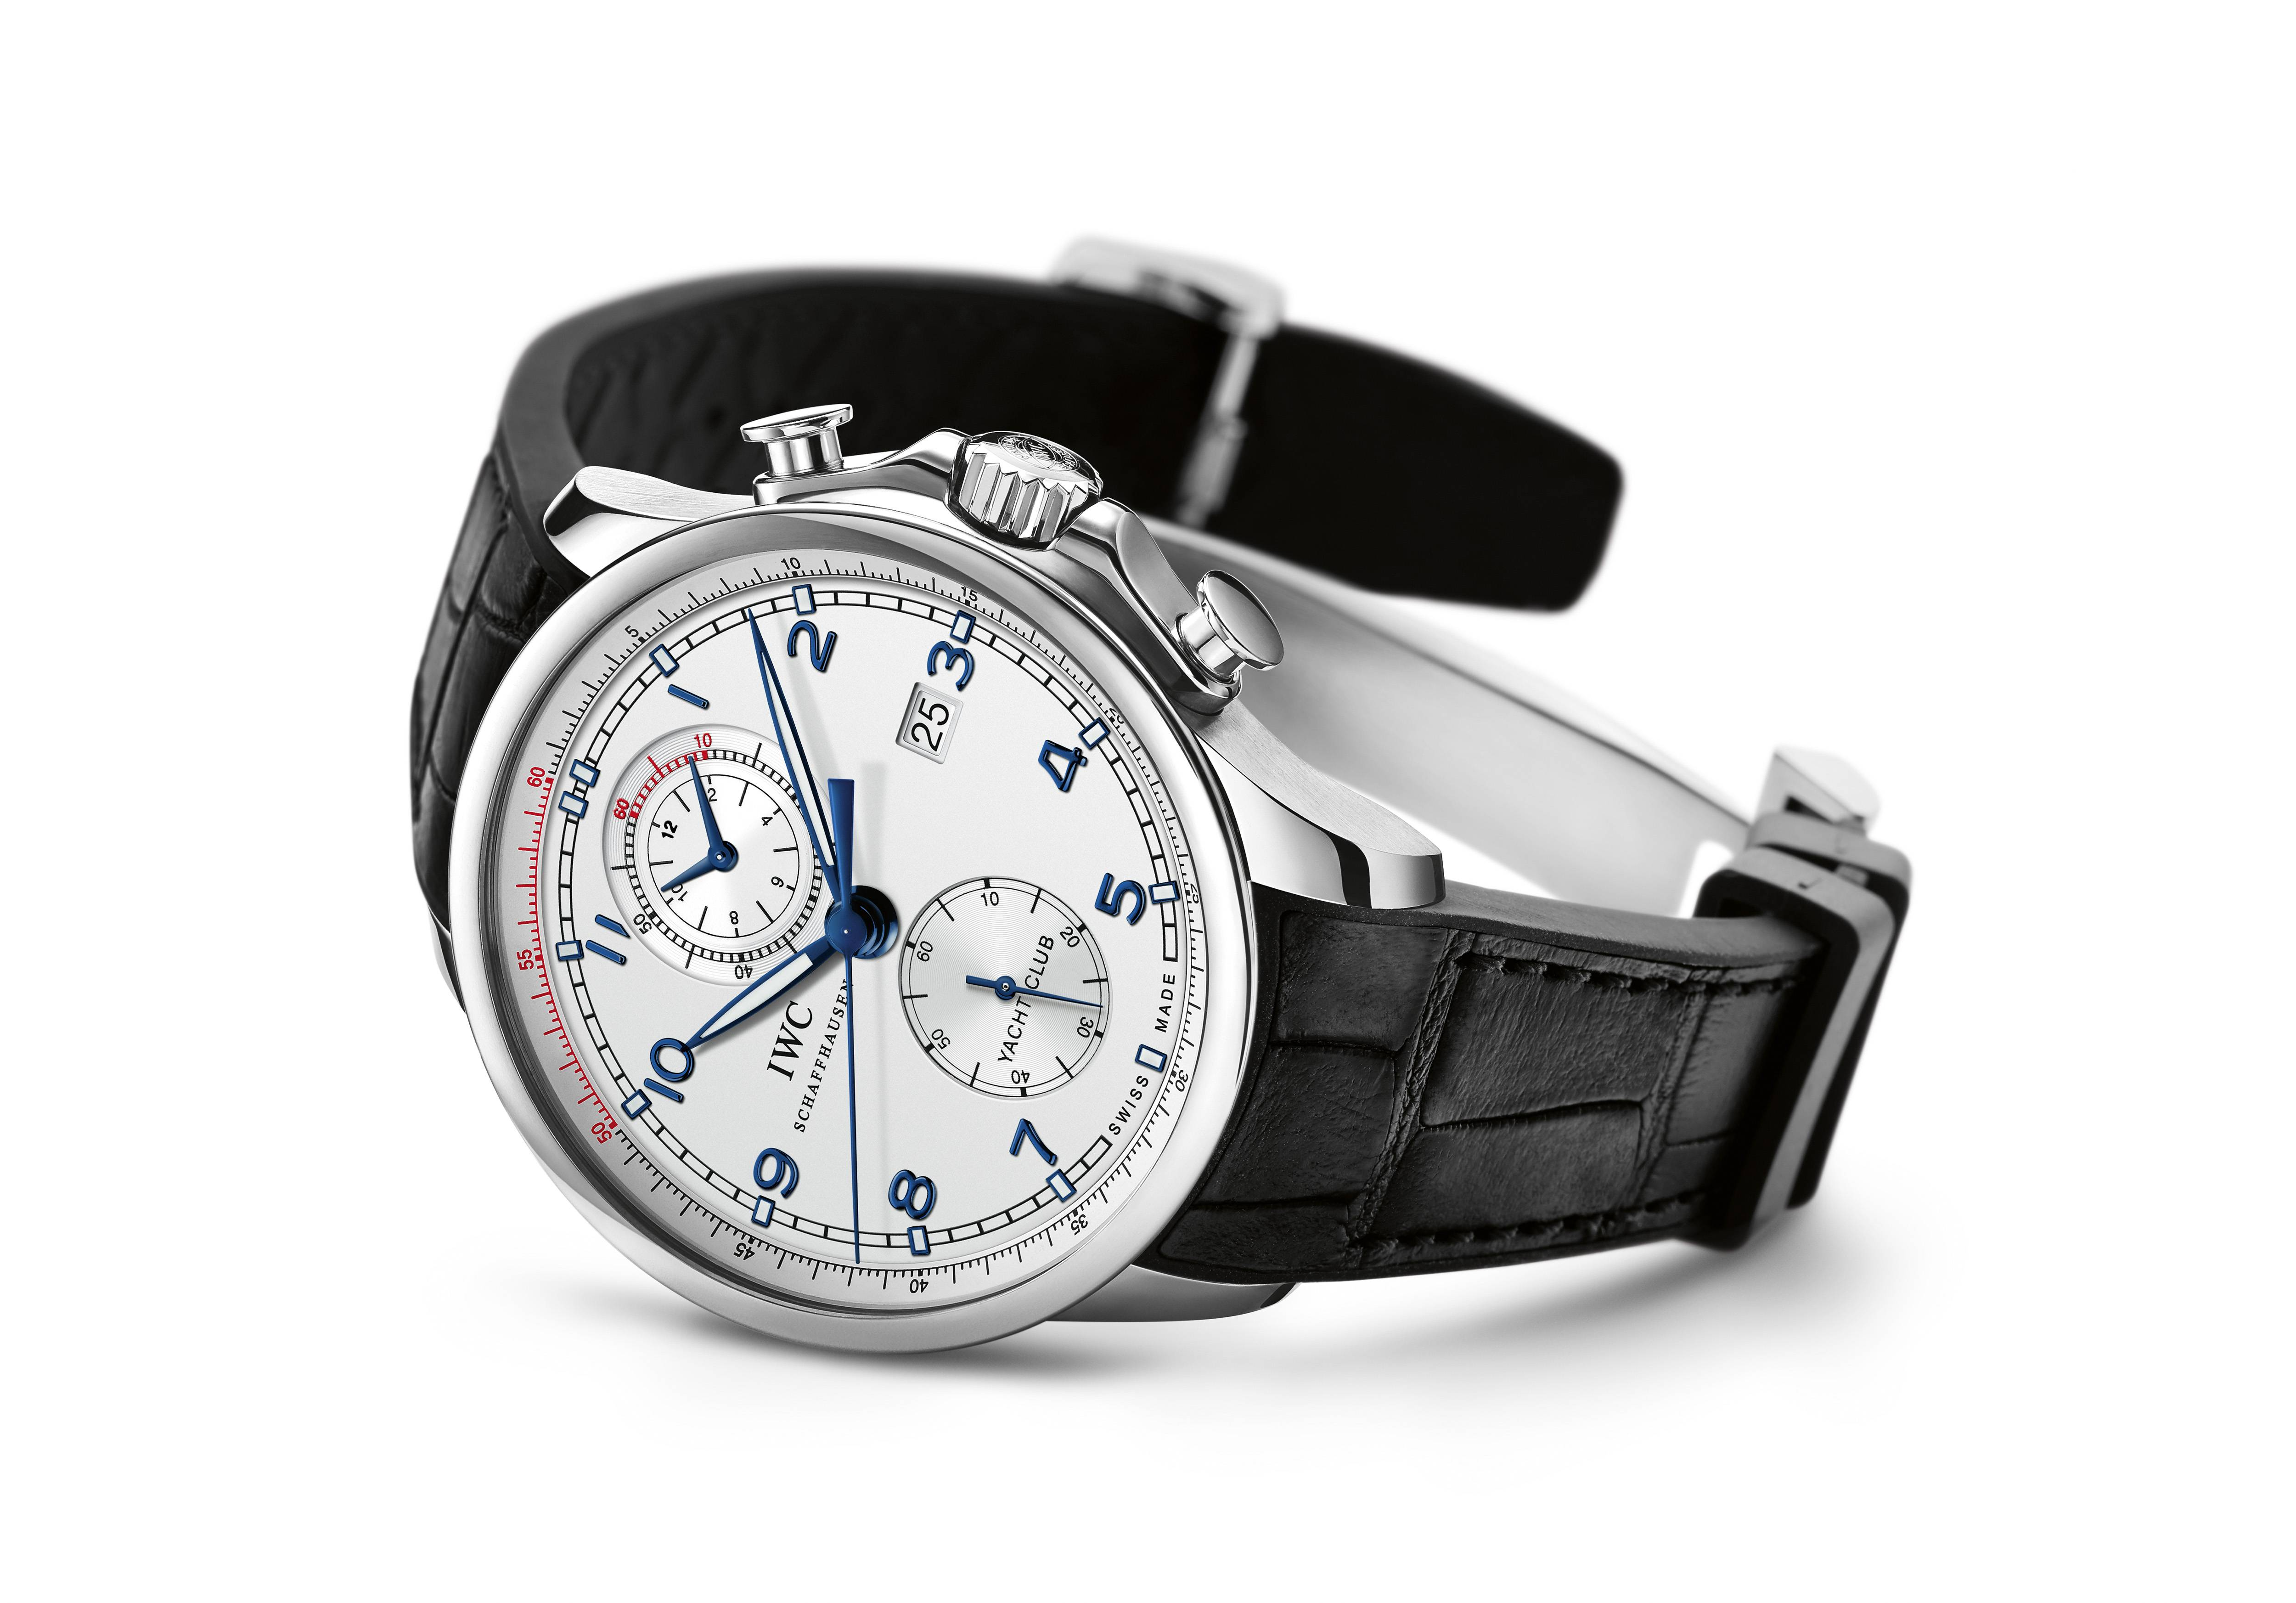 UNDATIERTES HANDOUT – The IWC Portugieser Yacht Club Chronograph Edition ''Ocean Racer'' (Ref. 3902) - limited to 1'000 watches worldwide - features a mechanical chronograph movement in a stainless-steel case. The robust watch has a sporty and masculine design with a silver plated dial, blued numerals, hands and indices. (PHOTOPRESS/IWC)